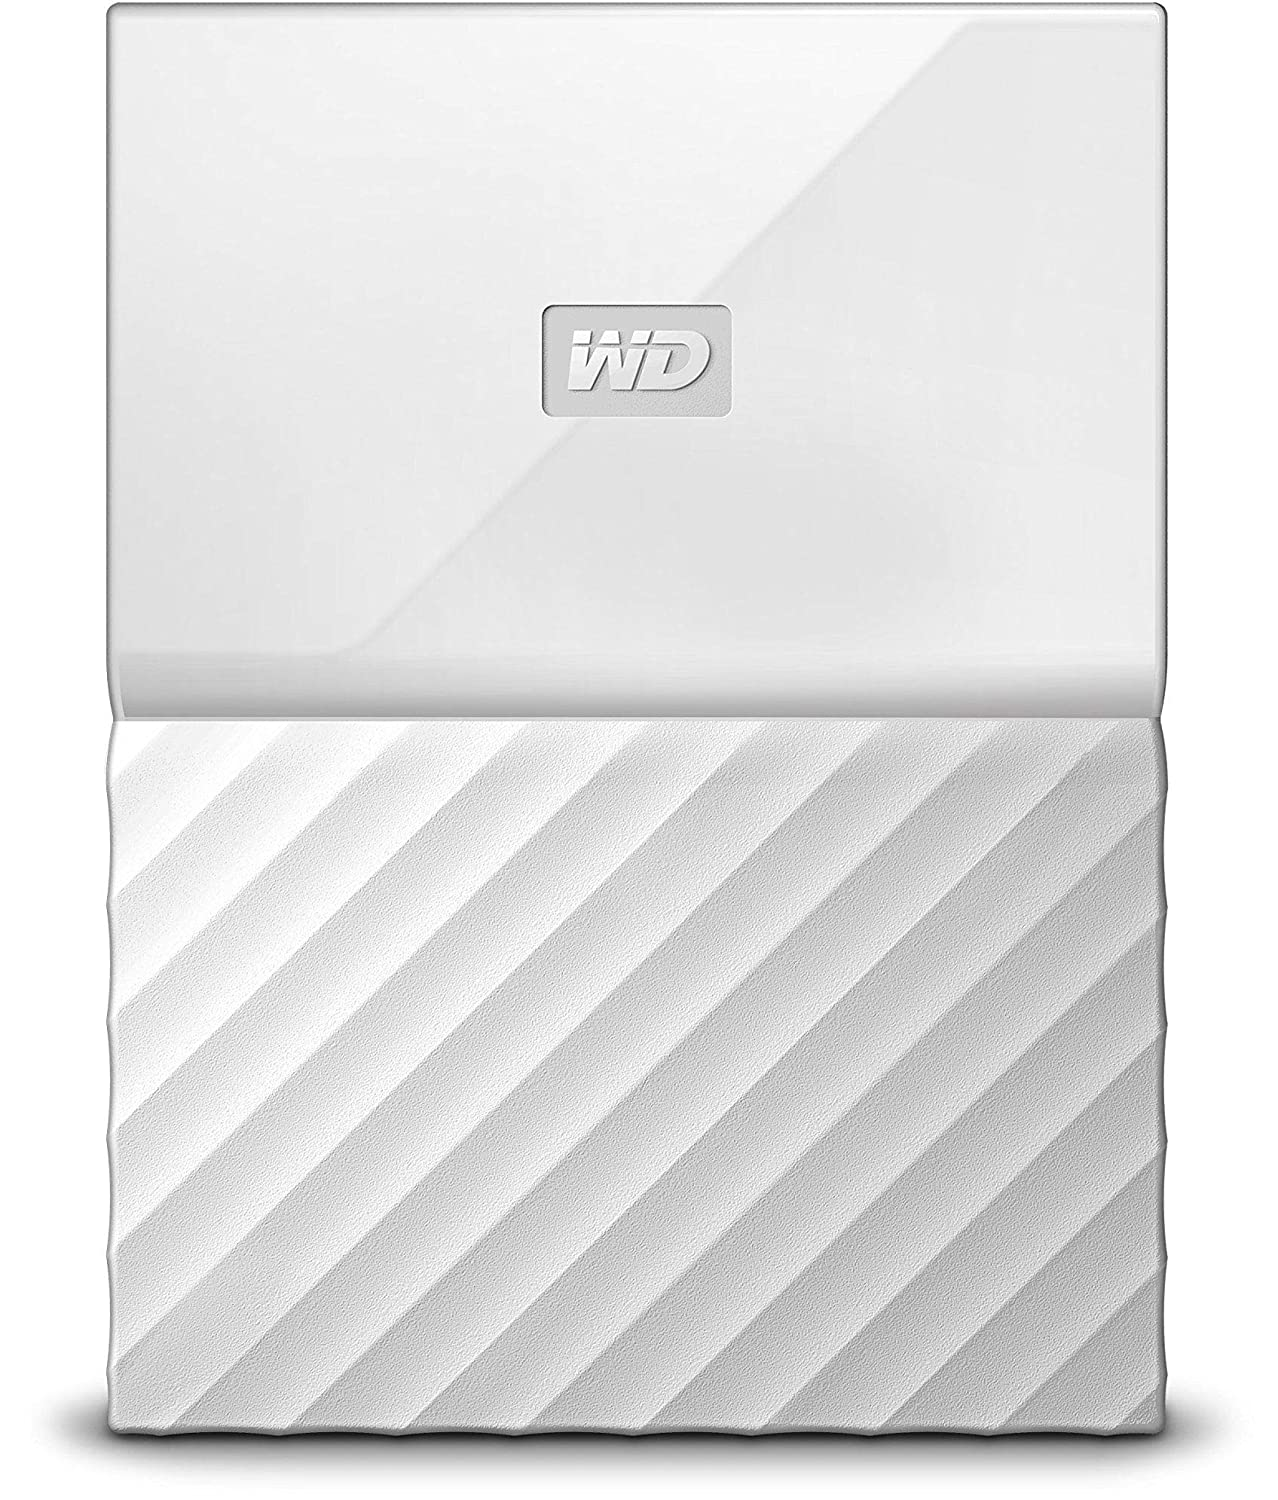 WD 1TB My Passport for Mac Portable External Hard Drive, USB-C/USB-A - WDBFKF0010BBK-WESE Western Digital